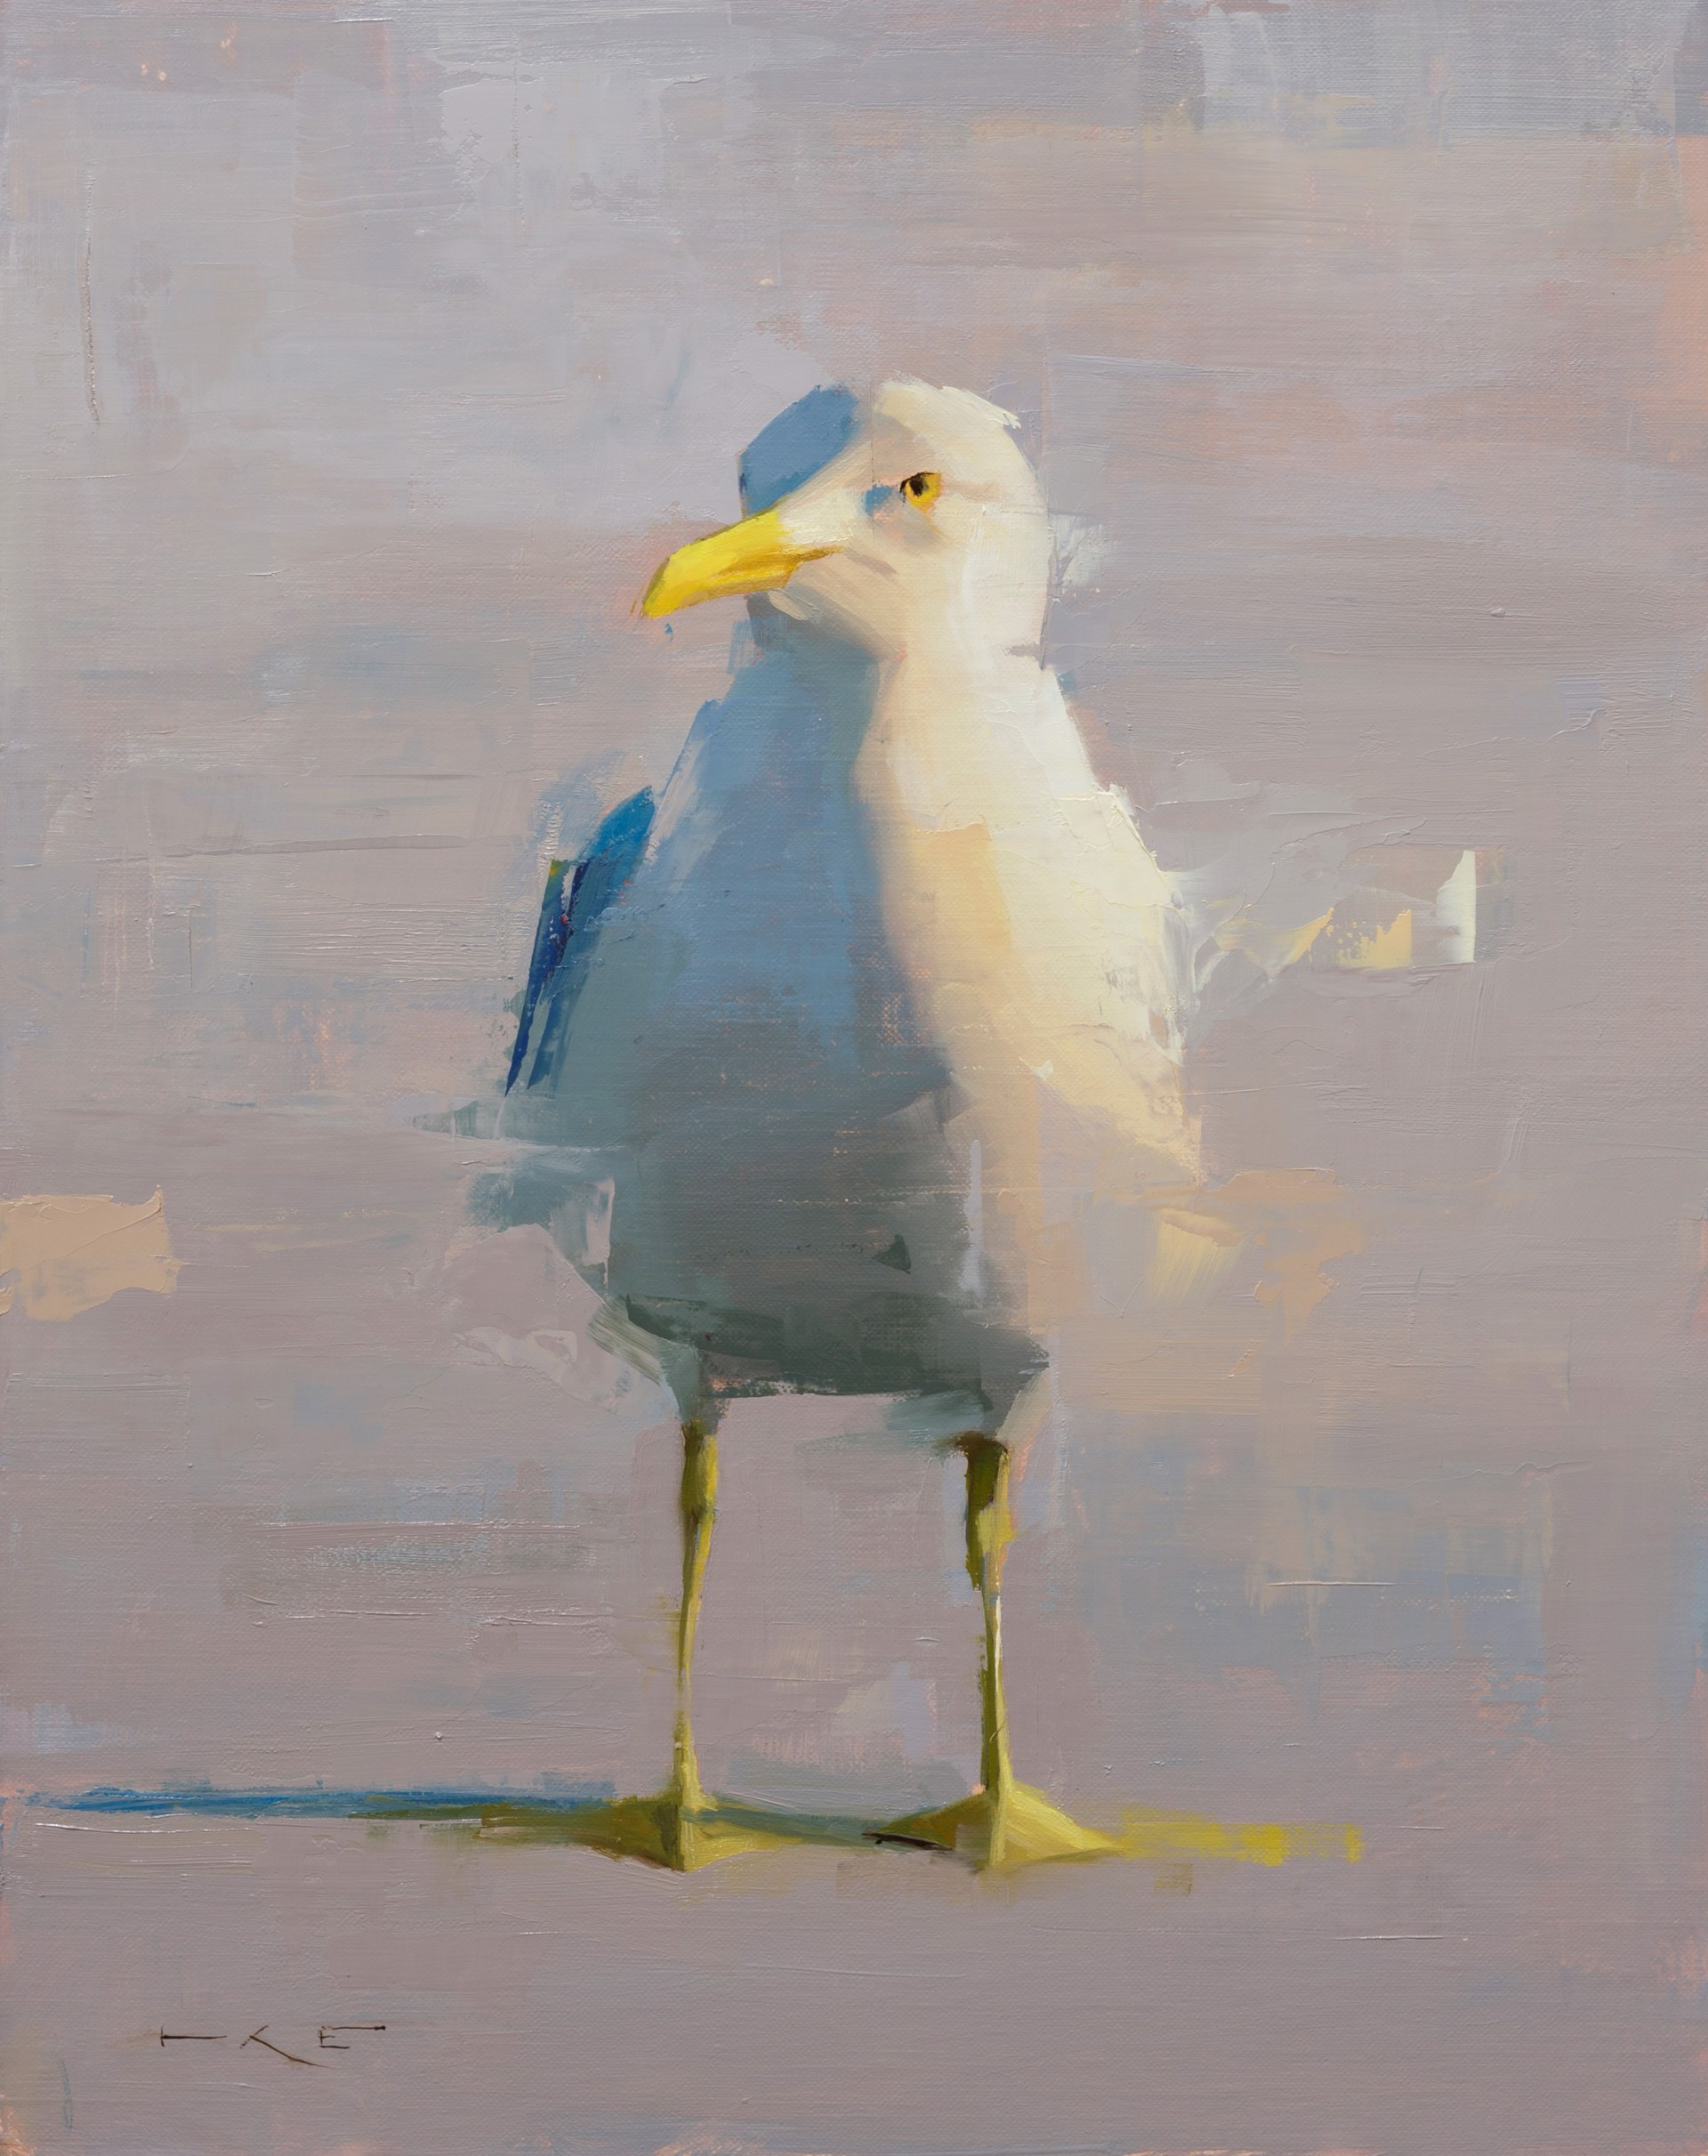 Seagull by Thorgrimur Einarsson